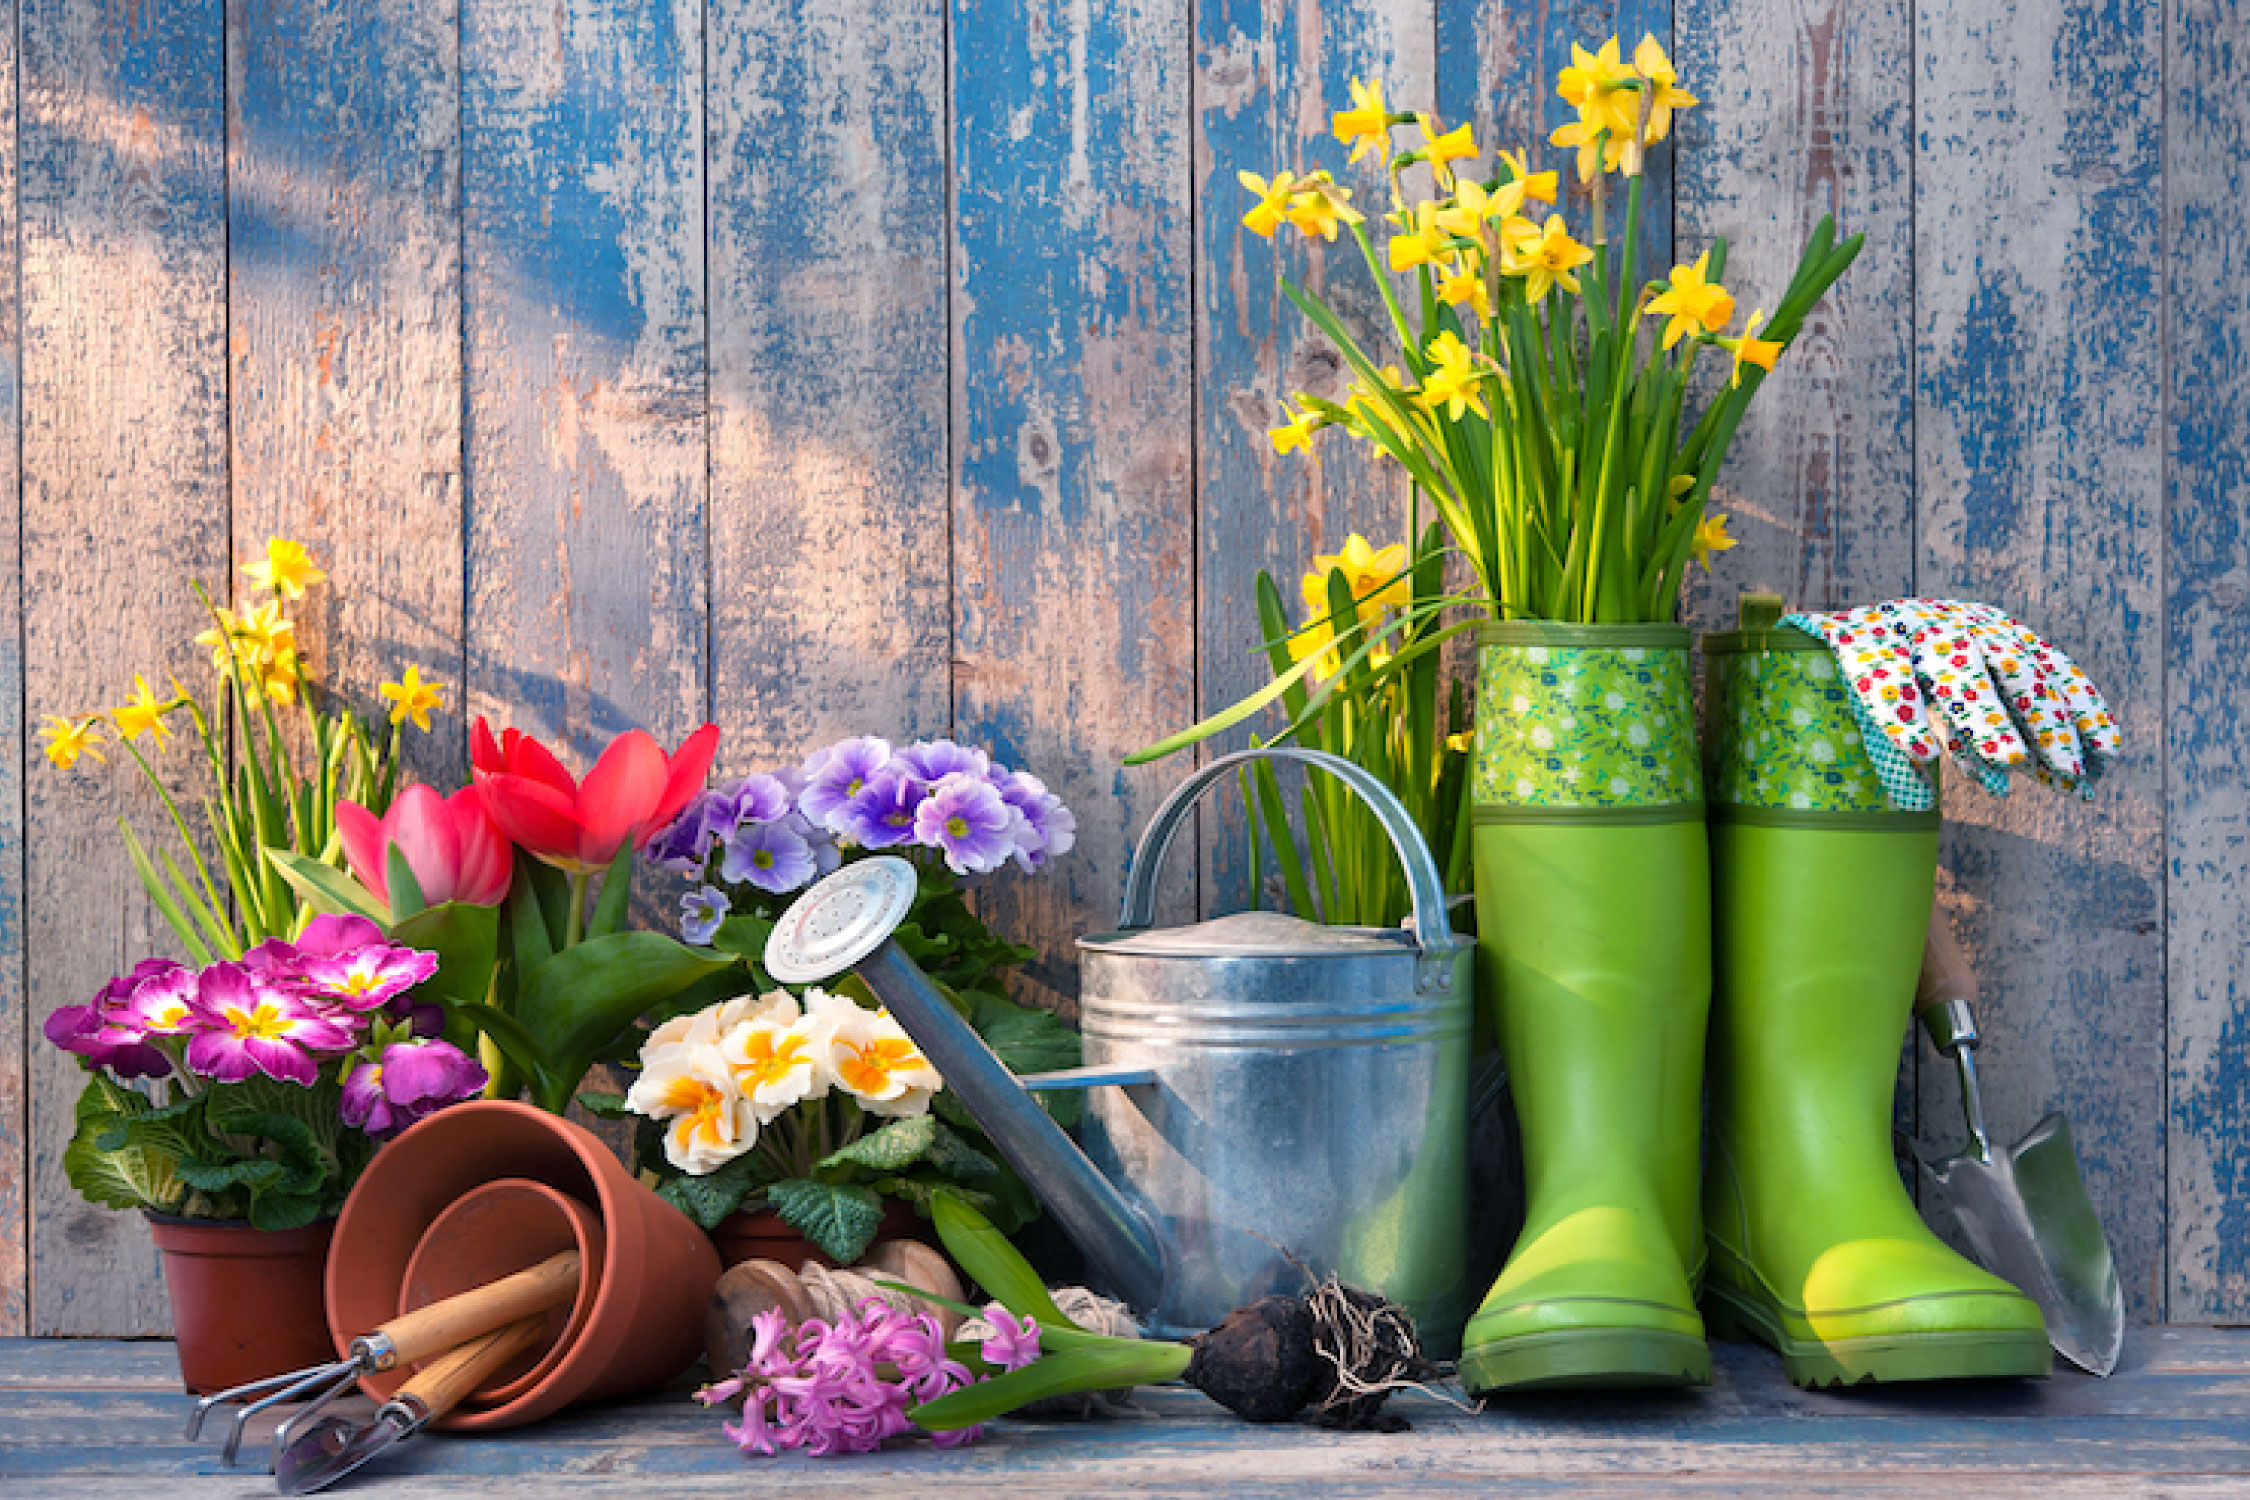 Spring: Tips To Prepare Your Garden